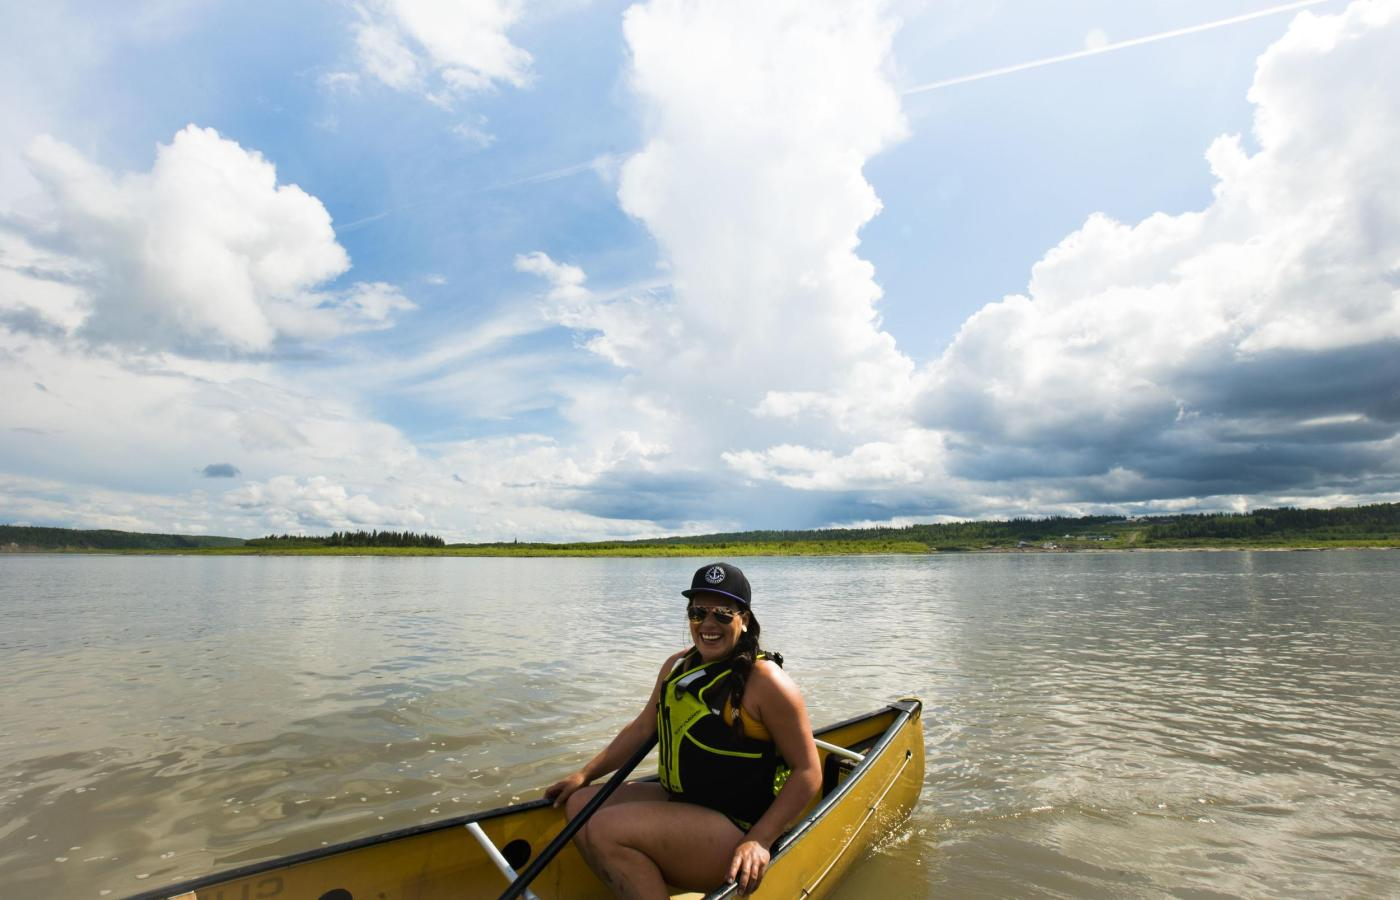 Woman relaxing in a canoe on the massive Mackenzie River near Fort Simpson